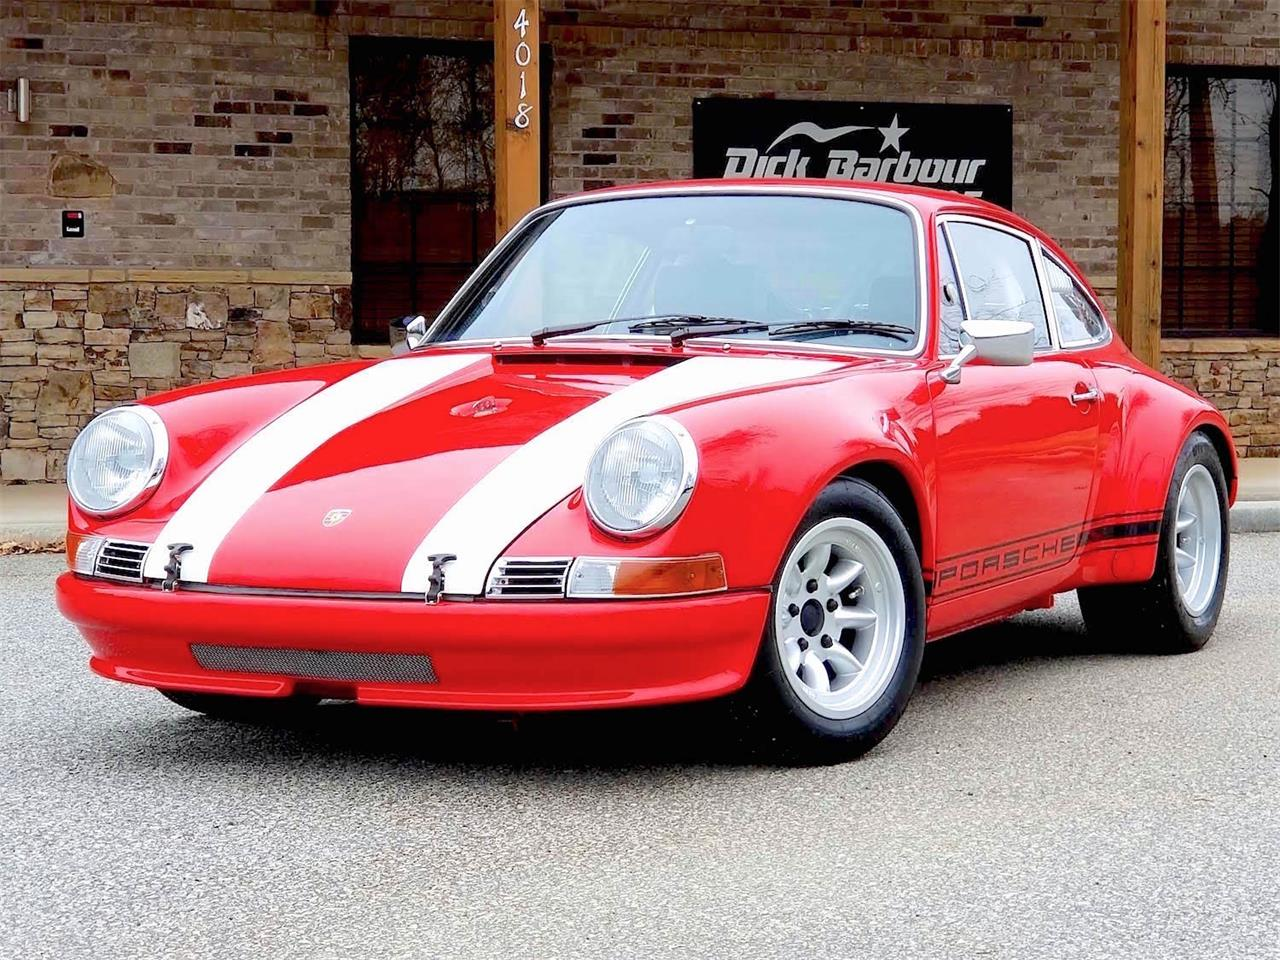 Large Picture of 1979 Porsche 911 located in Oakwood Georgia - $179,000.00 - P7XH